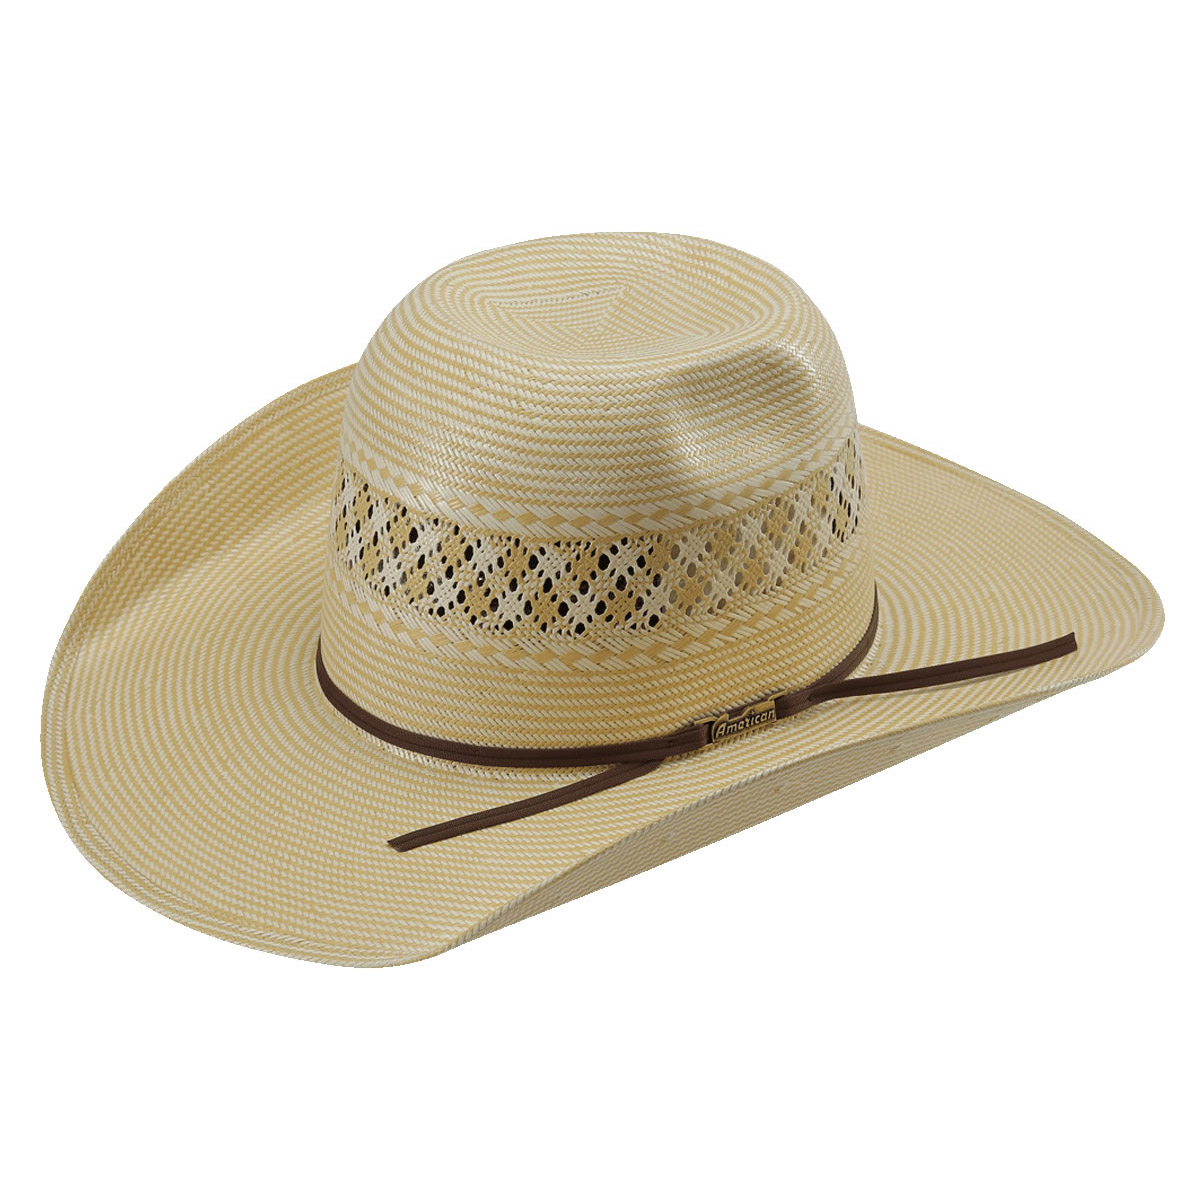 d5075ad96fcc4 Pungo Ridge - American Hat Co 15☆ 1022 2X2 Two-Tone Vented Straw ...